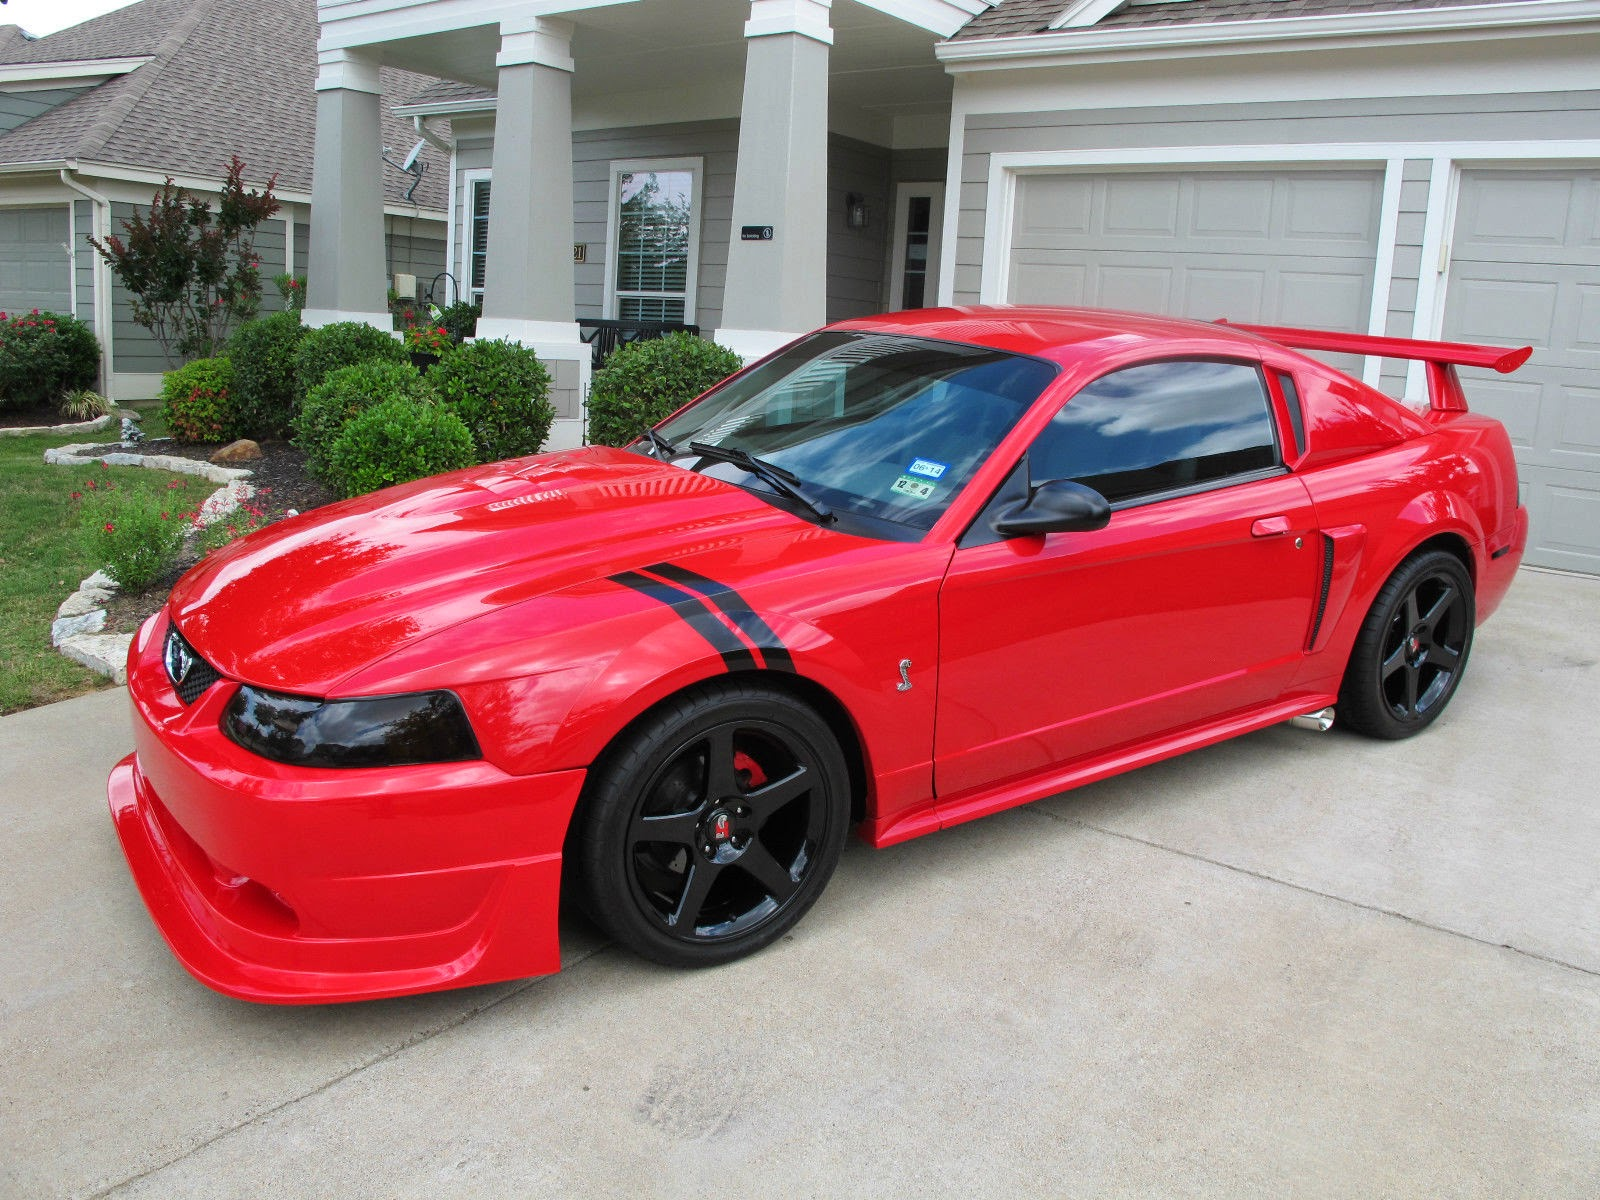 The car being listed is an awesome 2004 ford mustang gt custom super charger 416hp this car has a ton of upgrades that makes it one unique vehicle